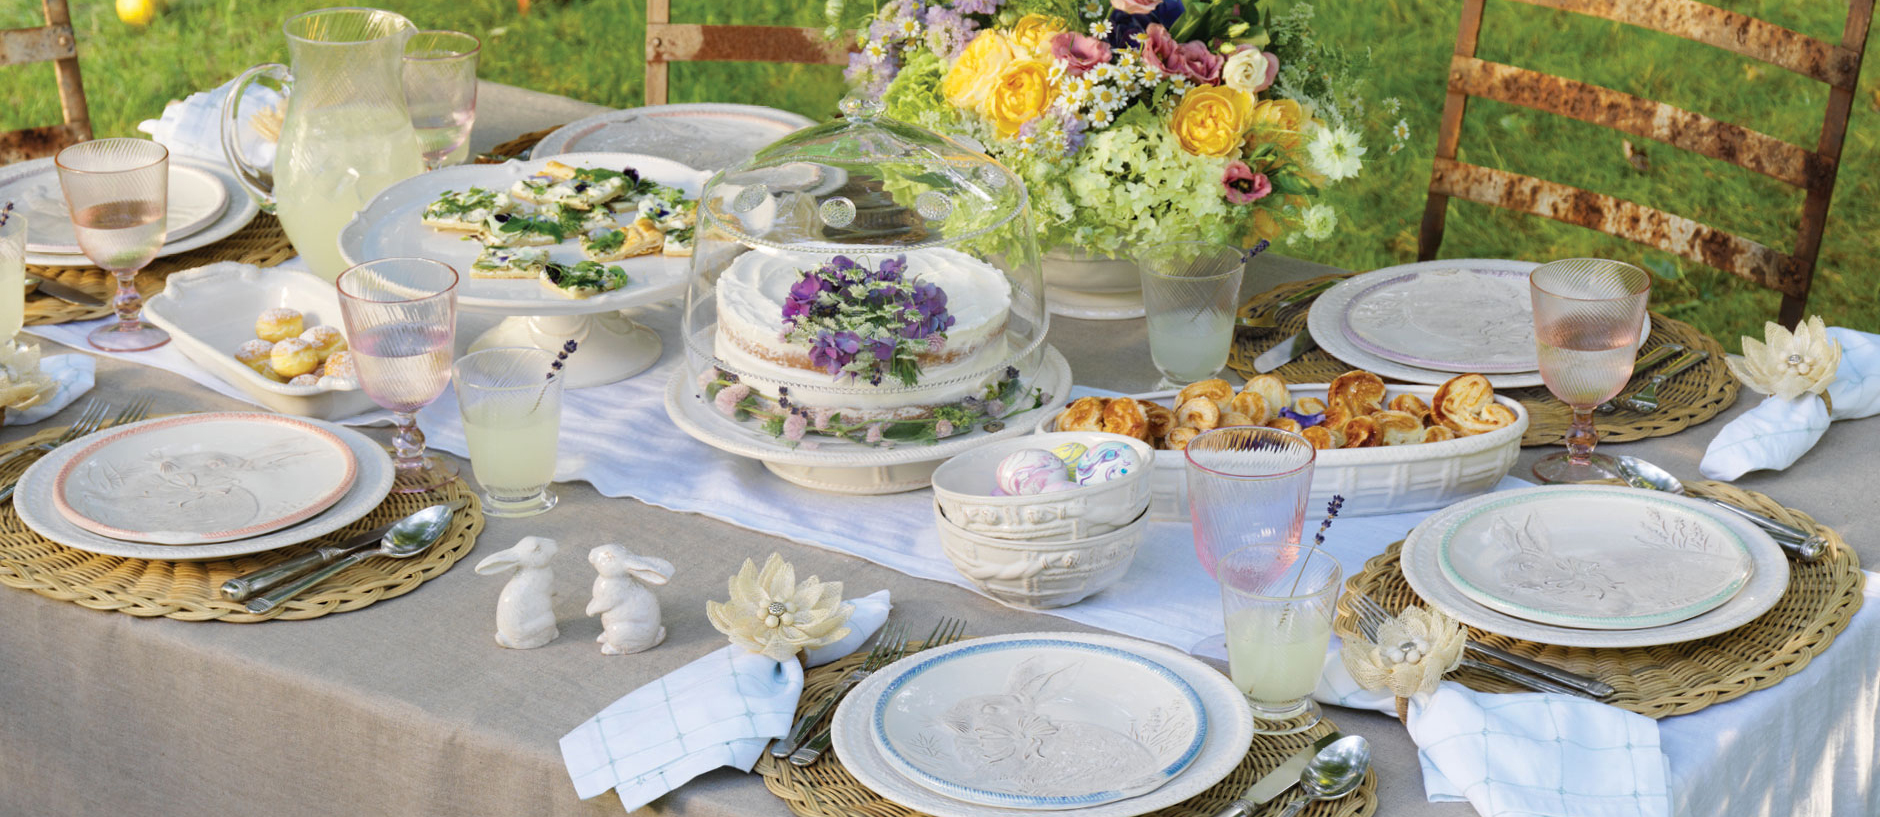 EASTER GARDEN PARTY Sunday, April 16